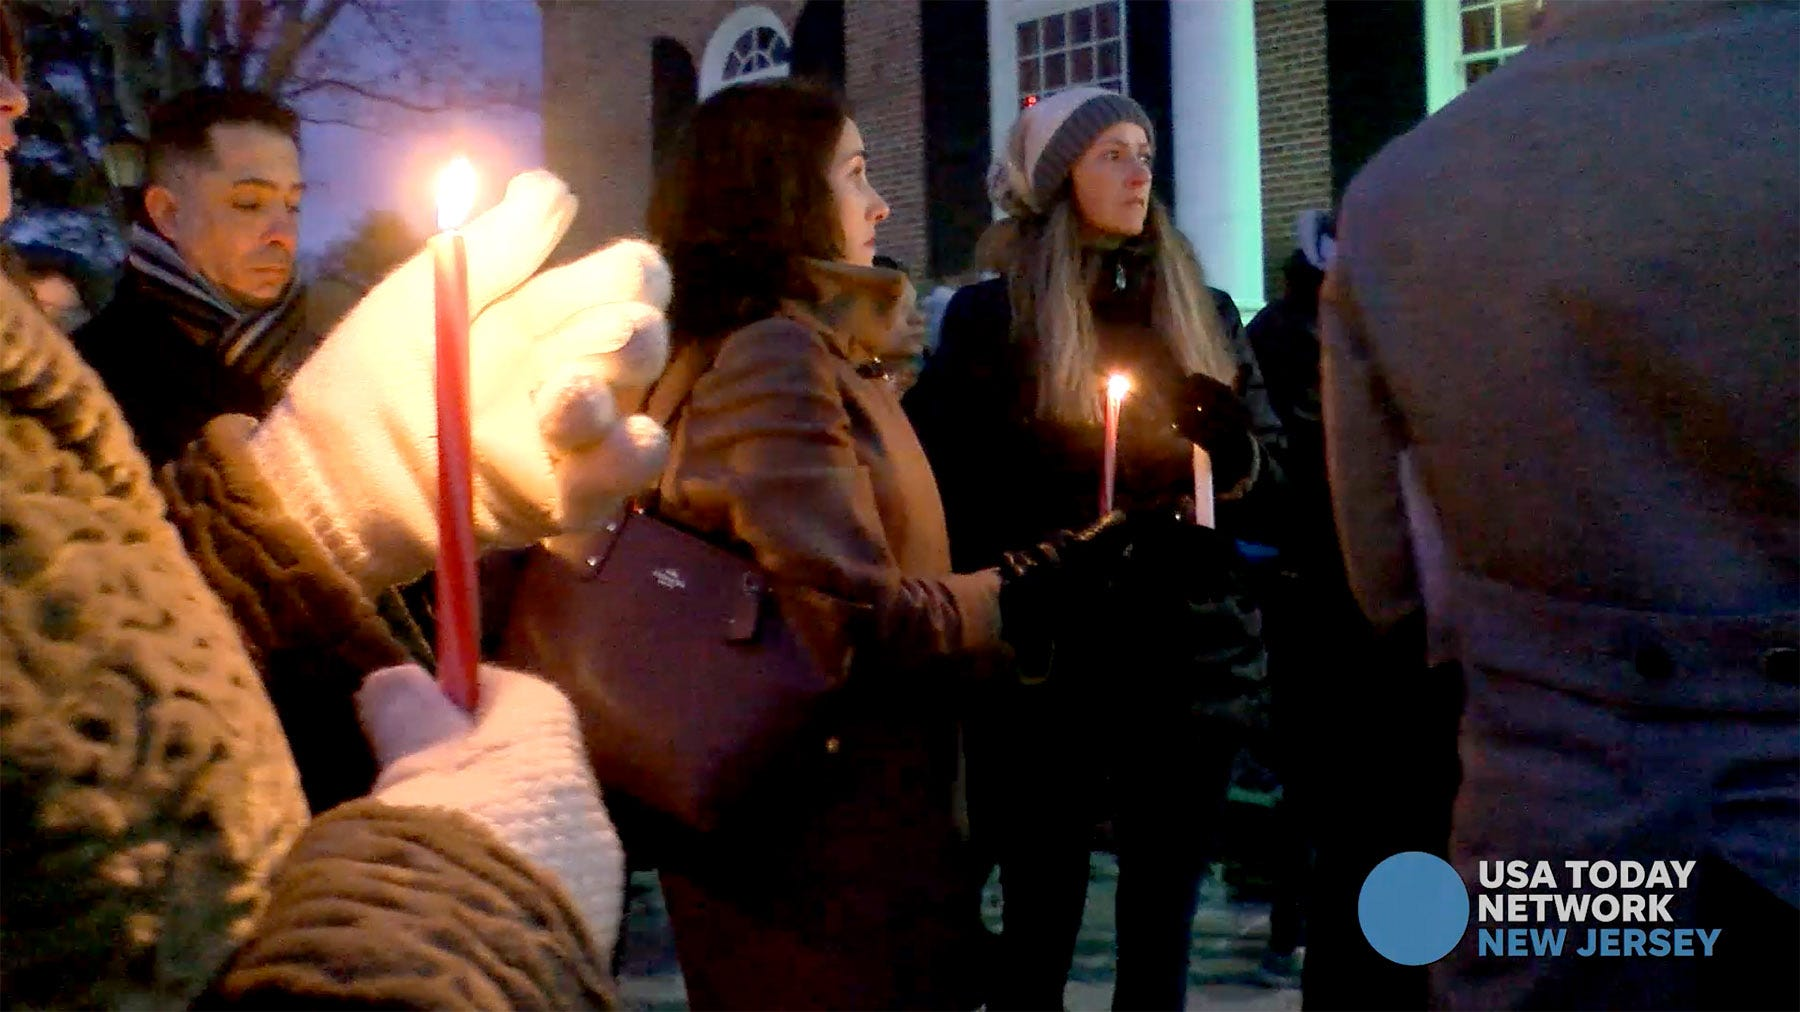 Colts Neck Fire: Community vigil remembers murder victims